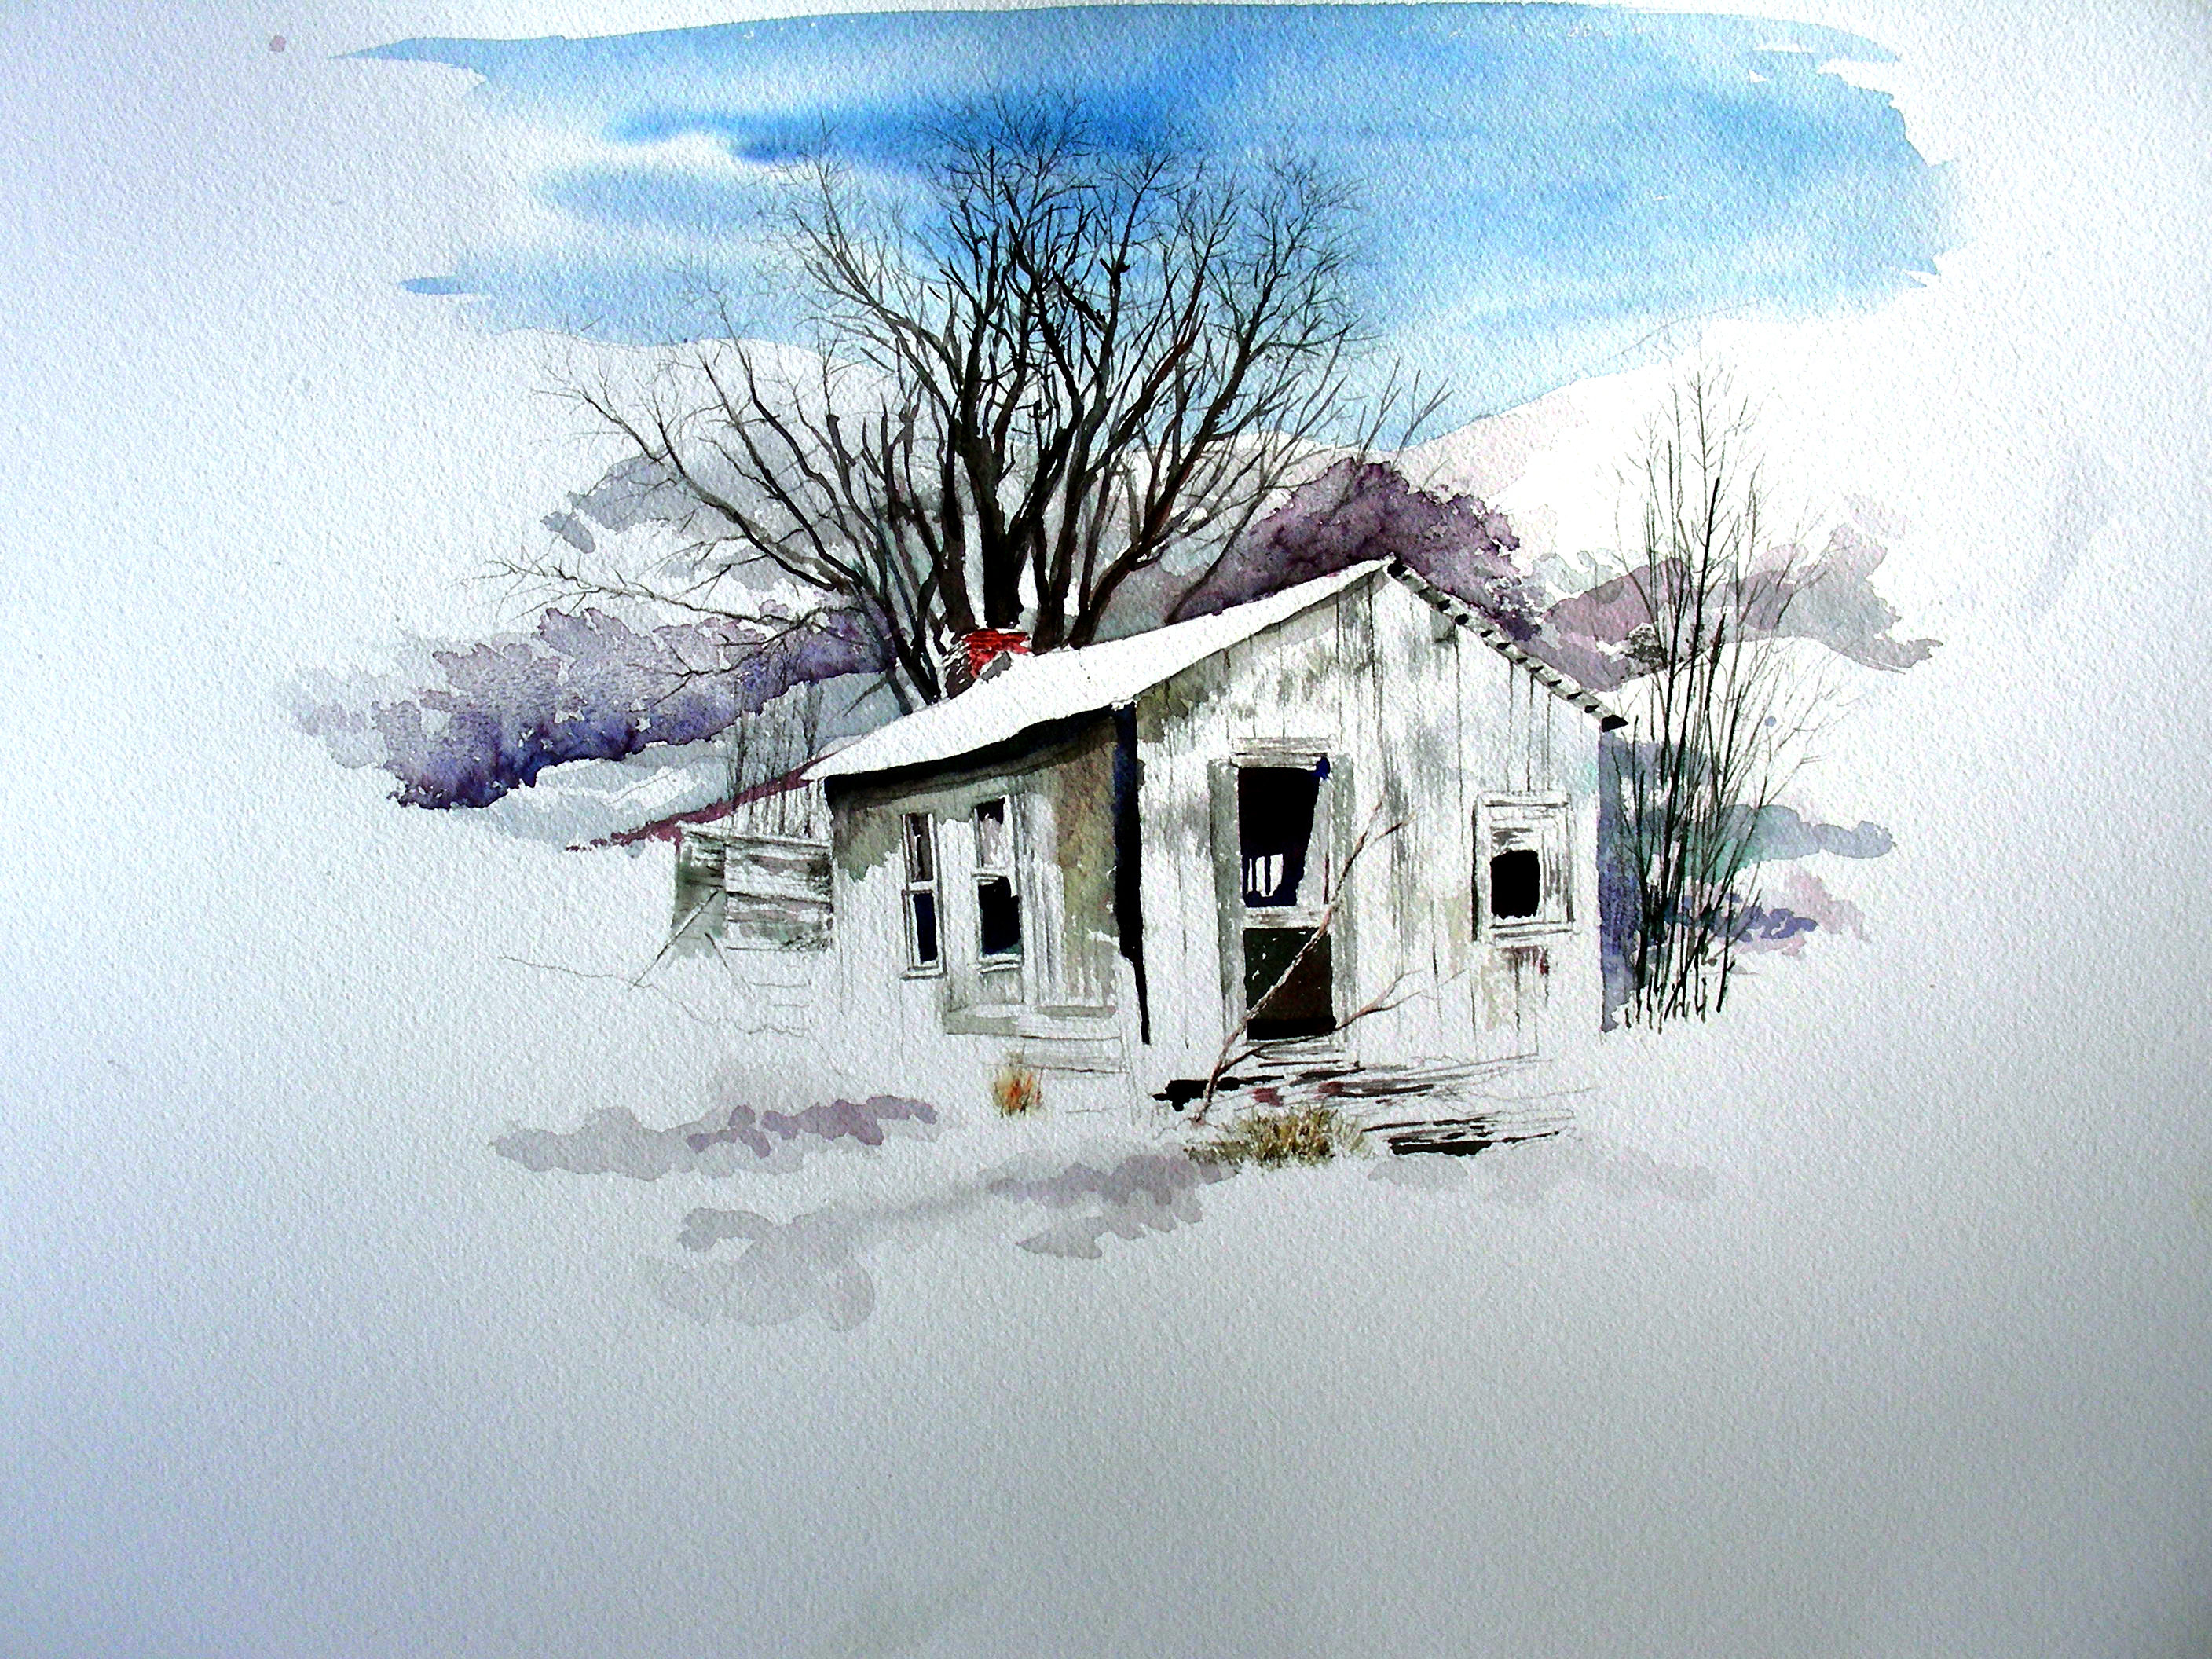 2816x2112 Christmas Watercolor Activity In The Man Cave Recollections 54